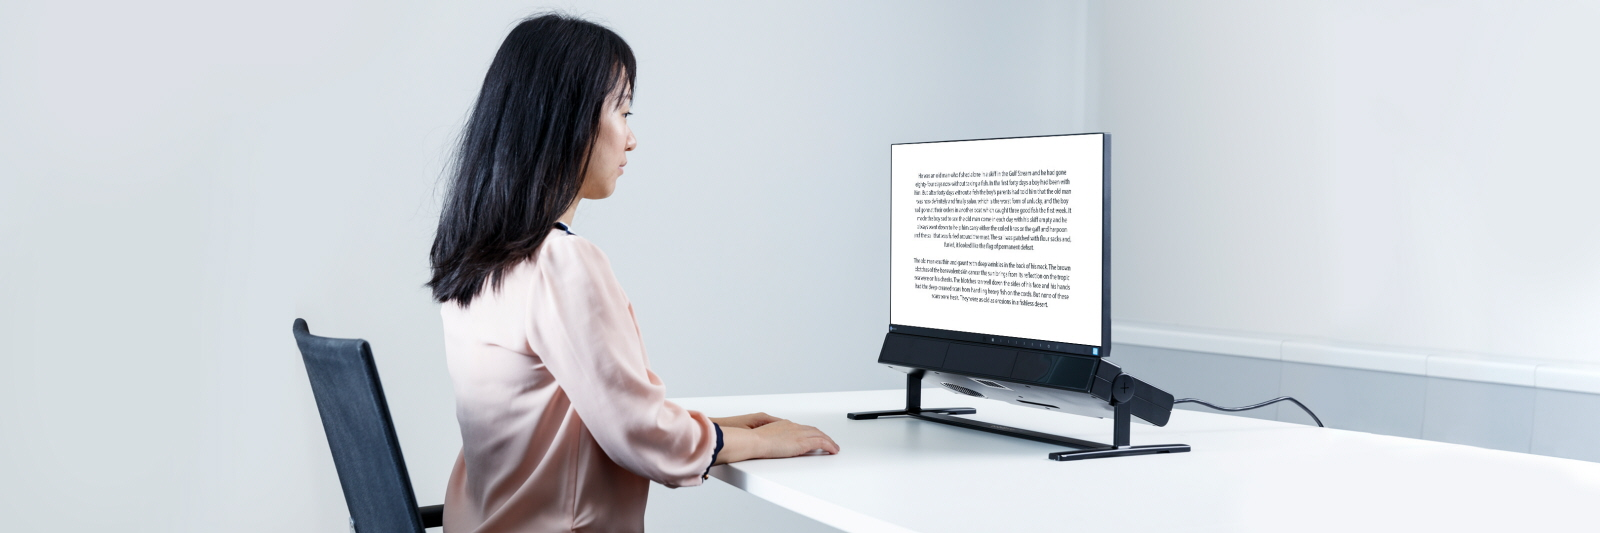 Tobii Pro Spectrum eye tracker is used for reading research